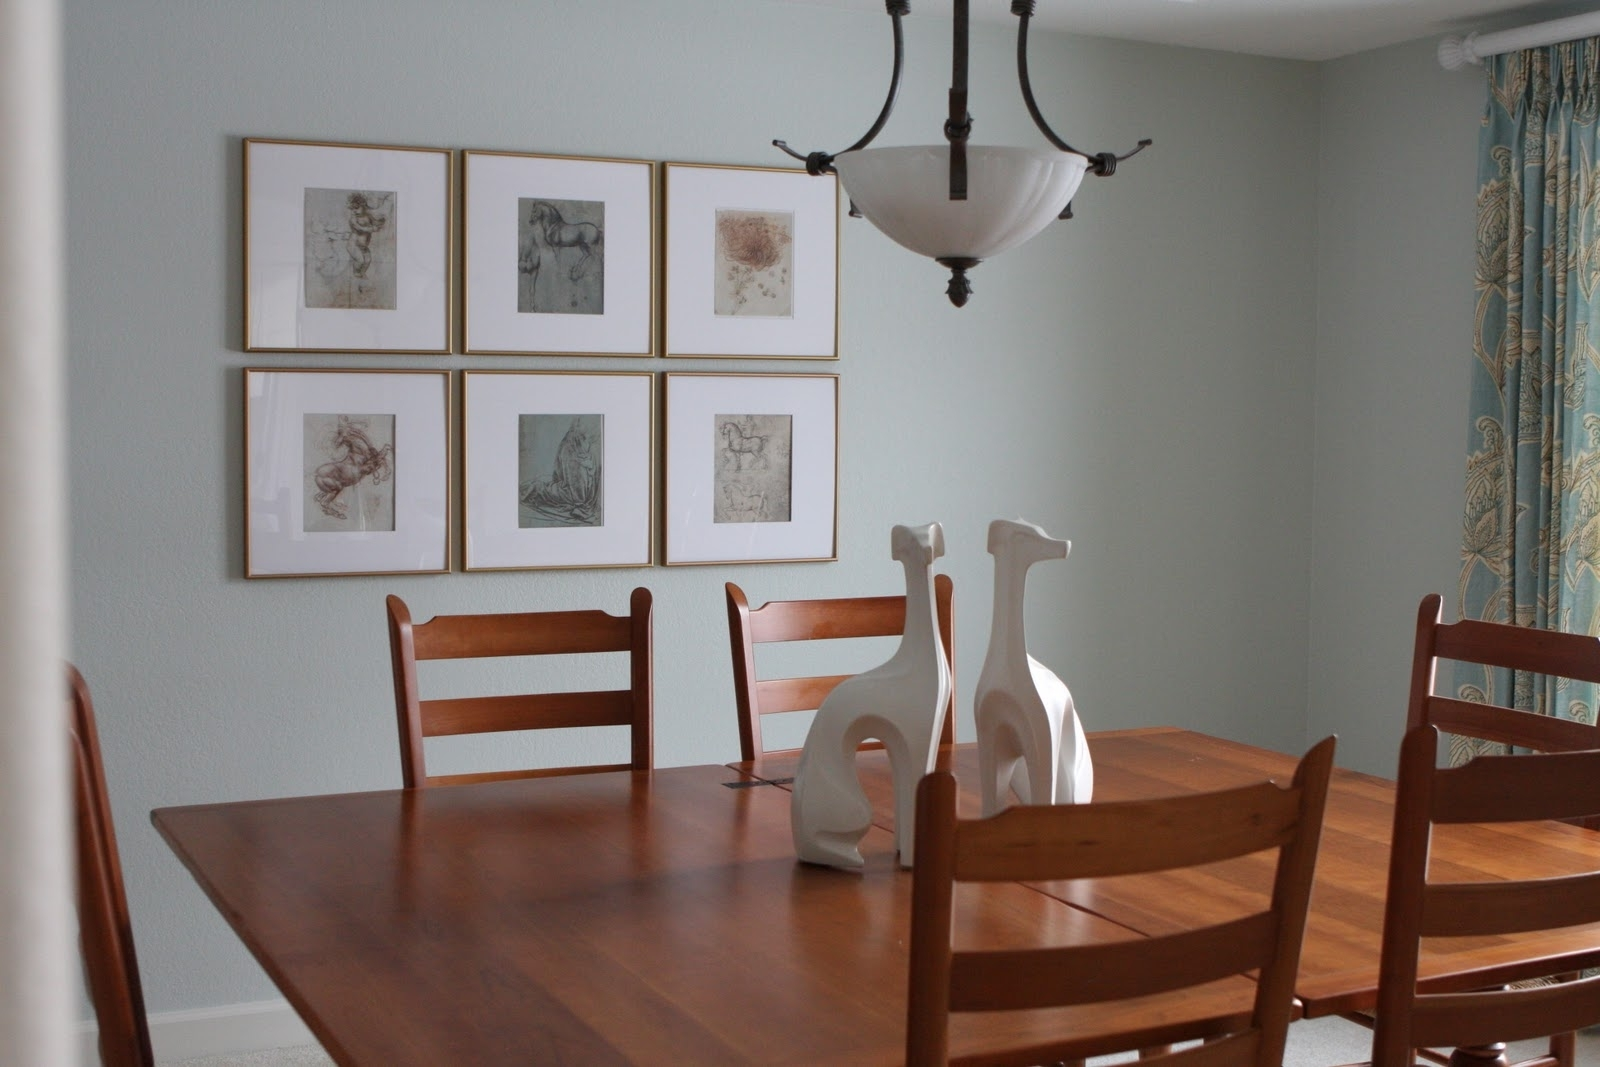 Most Recently Released Dining Room Wall Art Contemporary With Photos Of Dining Room Decor Regarding Dining Room Wall Art (View 11 of 15)